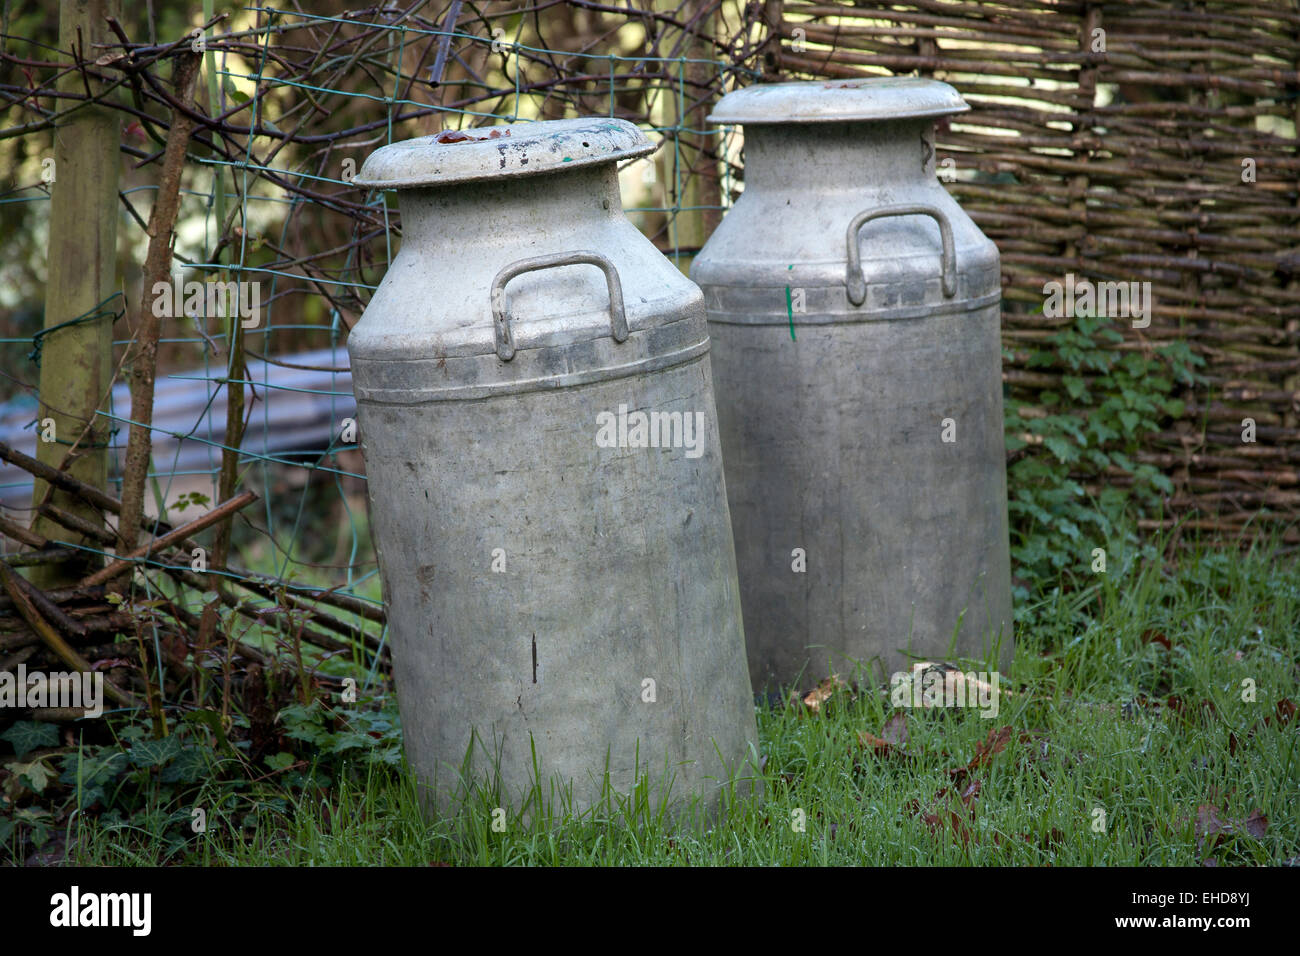 Decorative Milk Urn Milk Urns Stock Photos Milk Urns Stock Images Alamy